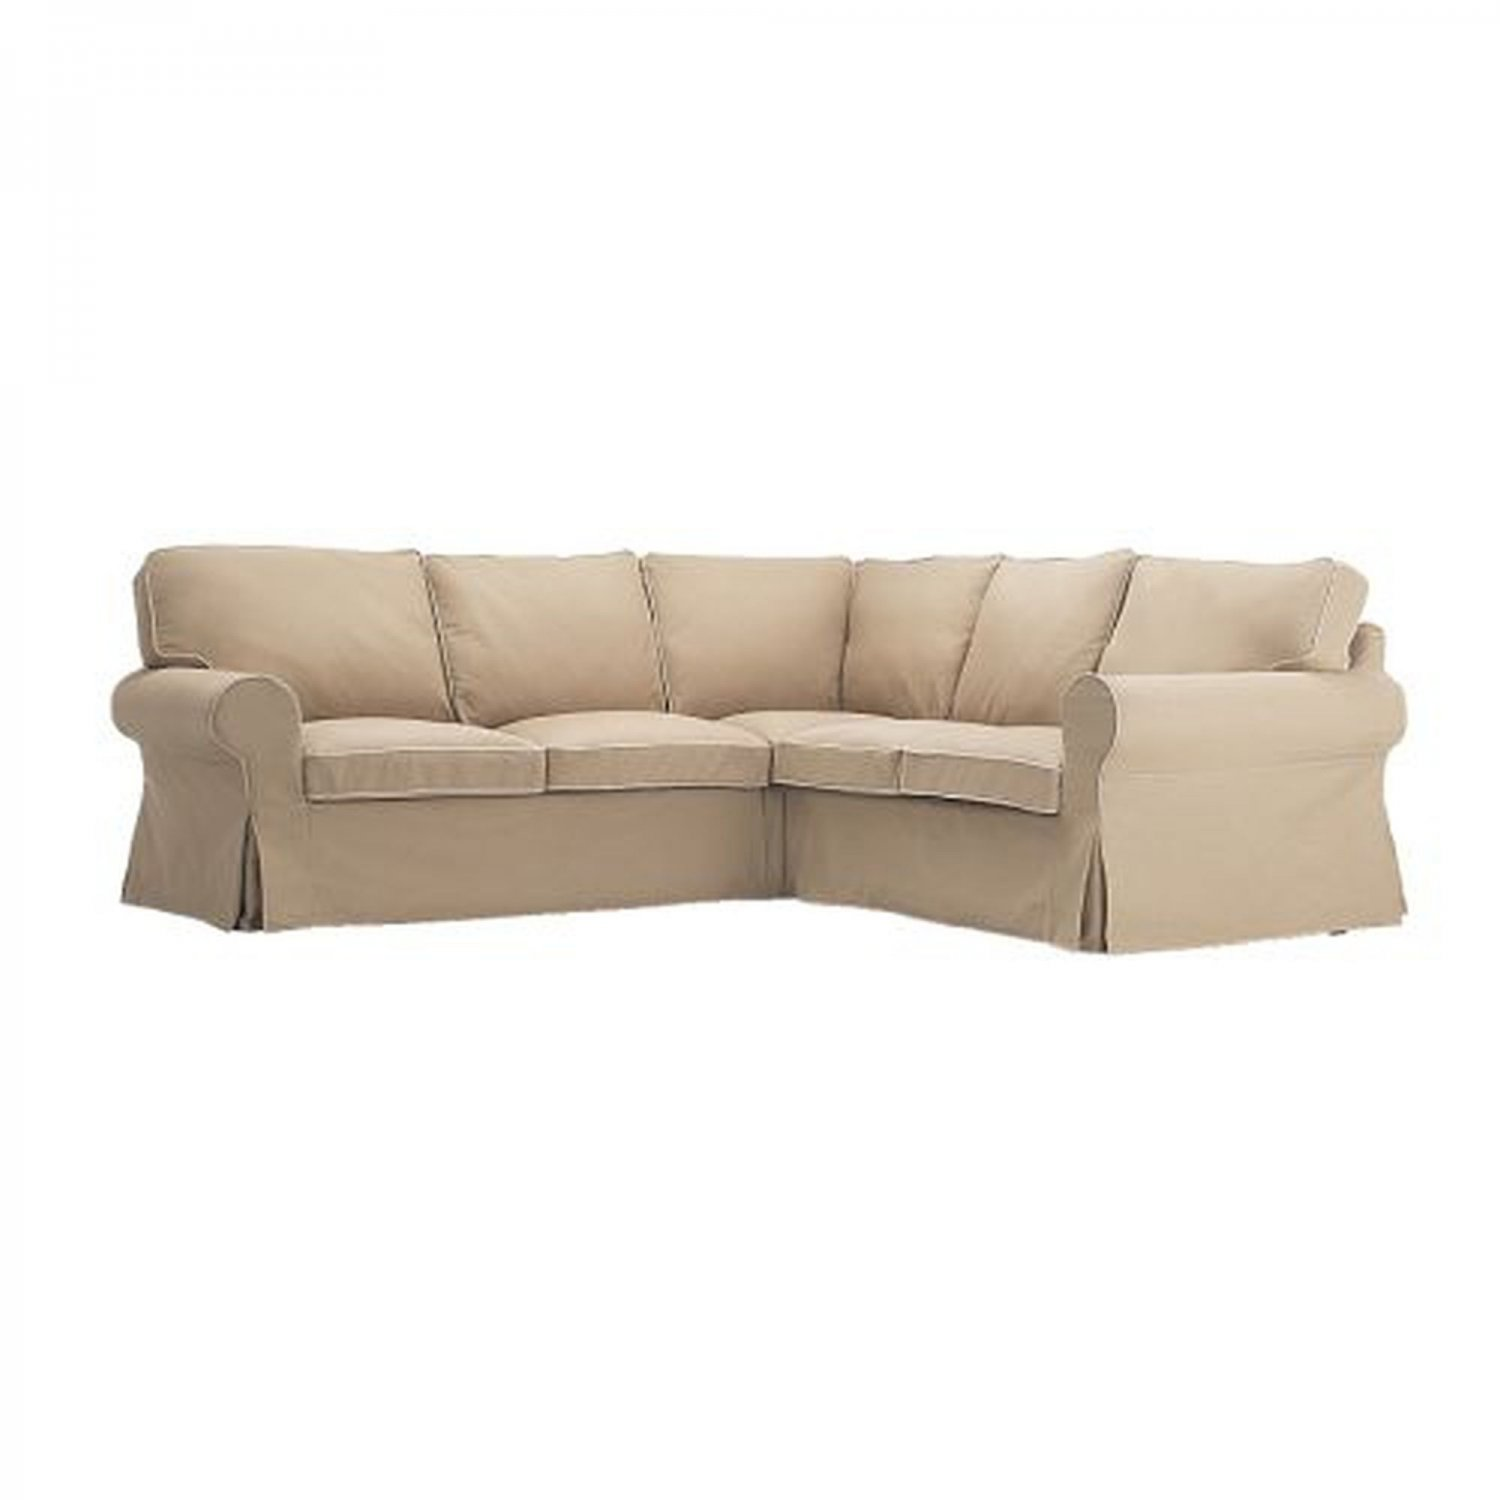 ikea karlanda sofa covers uk billige sofas berlin ektorp 2 432 corner cover slipcover idemo beige